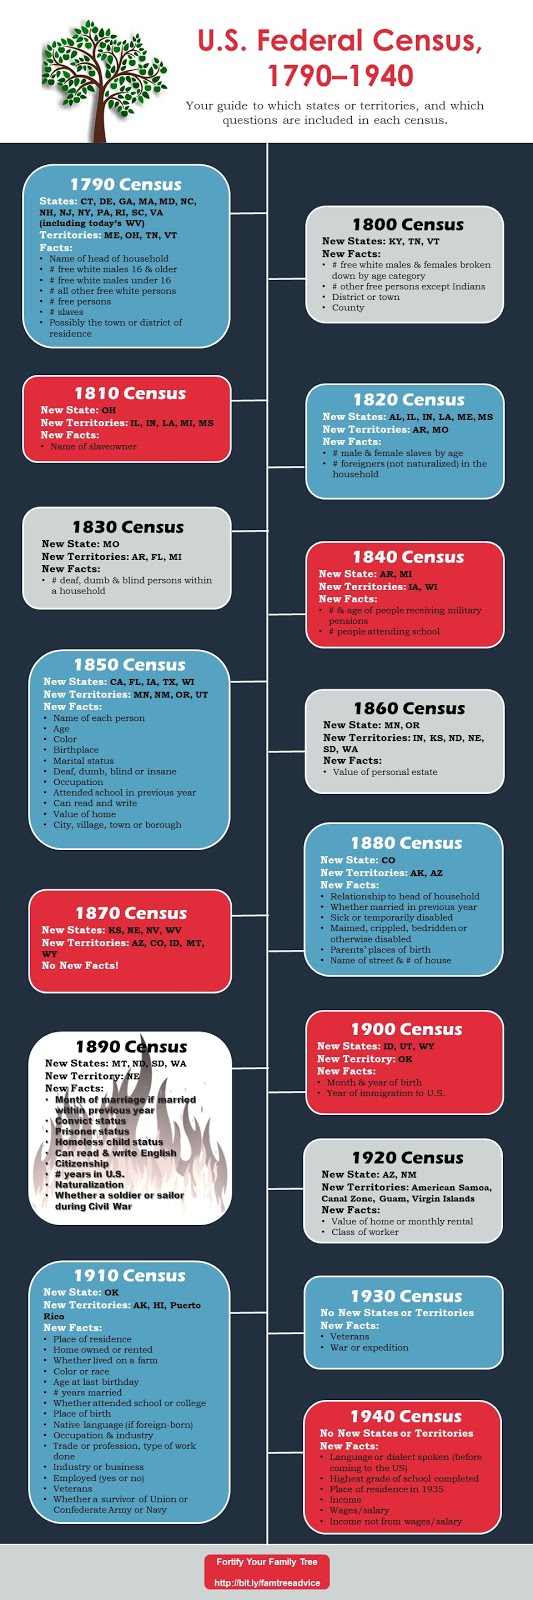 Diagram of U.S. Census Changes from 1790 to 1940